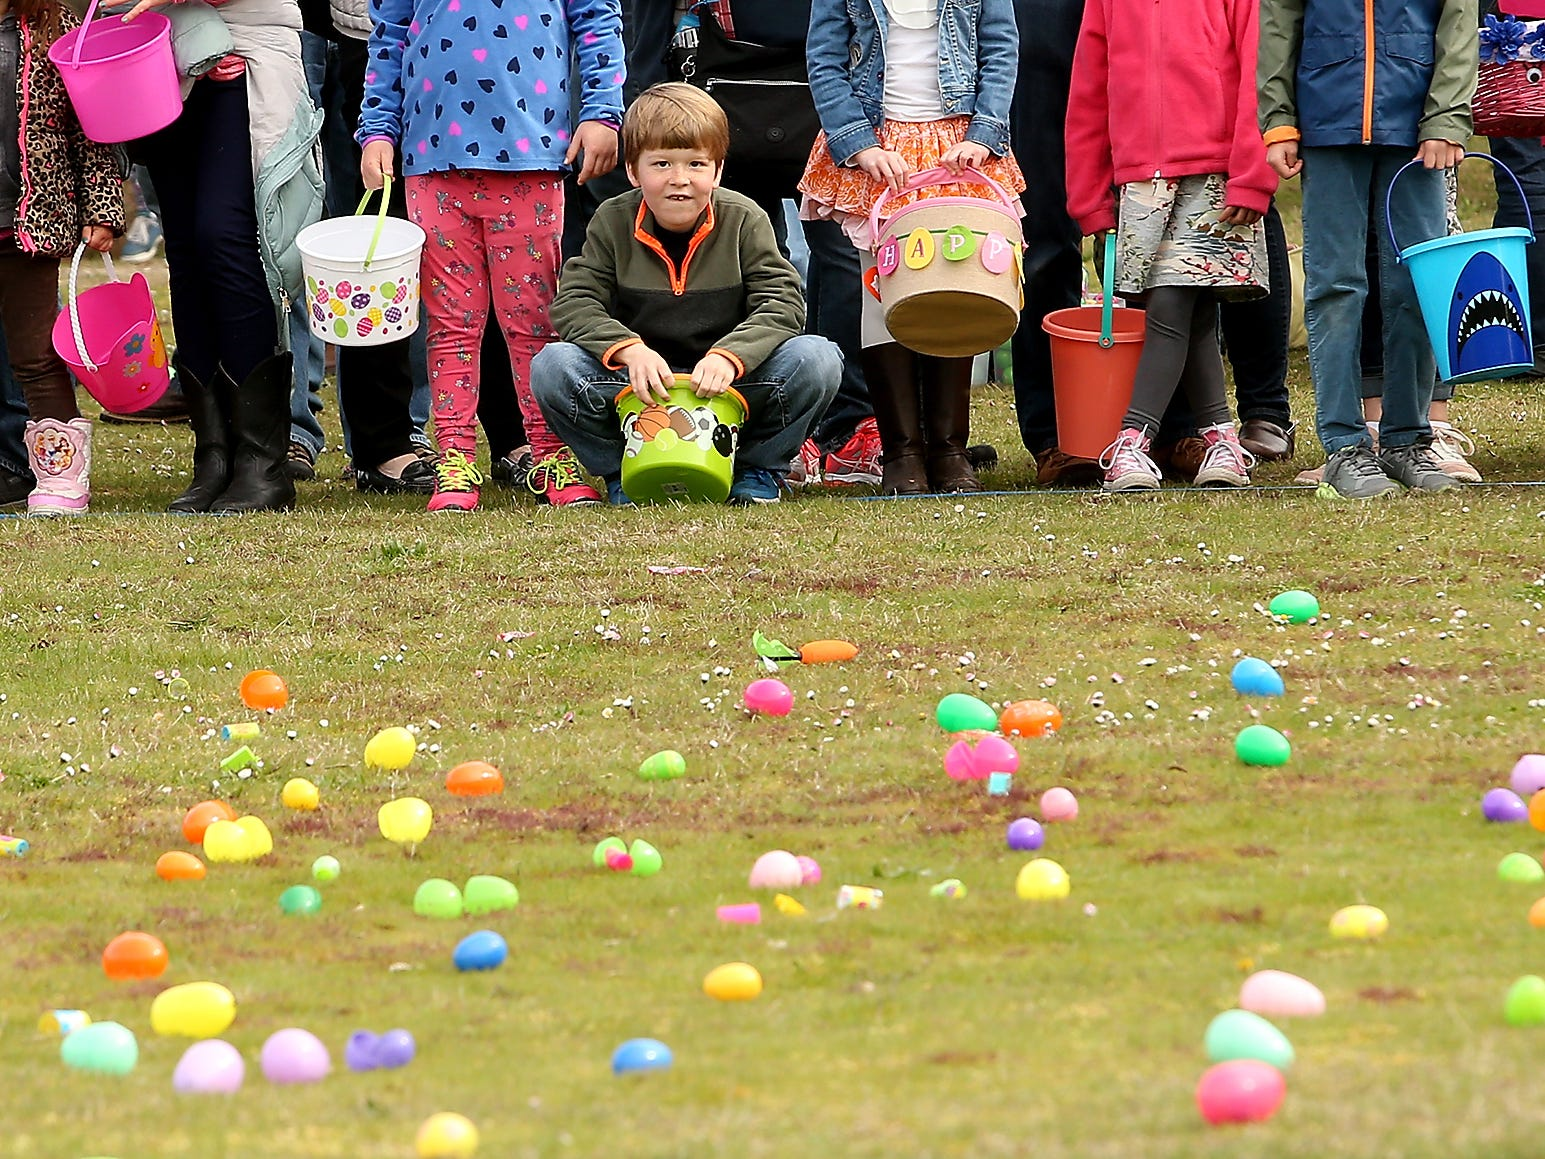 James Storm, 6, crouches down low to scope out the eggs filled with candy and prizes strewn about the grass just prior to the countdown start for the mEGGa Hunt at Battle Point Park on Bainbridge Island, Washington on Saturday, March 31, 2018.